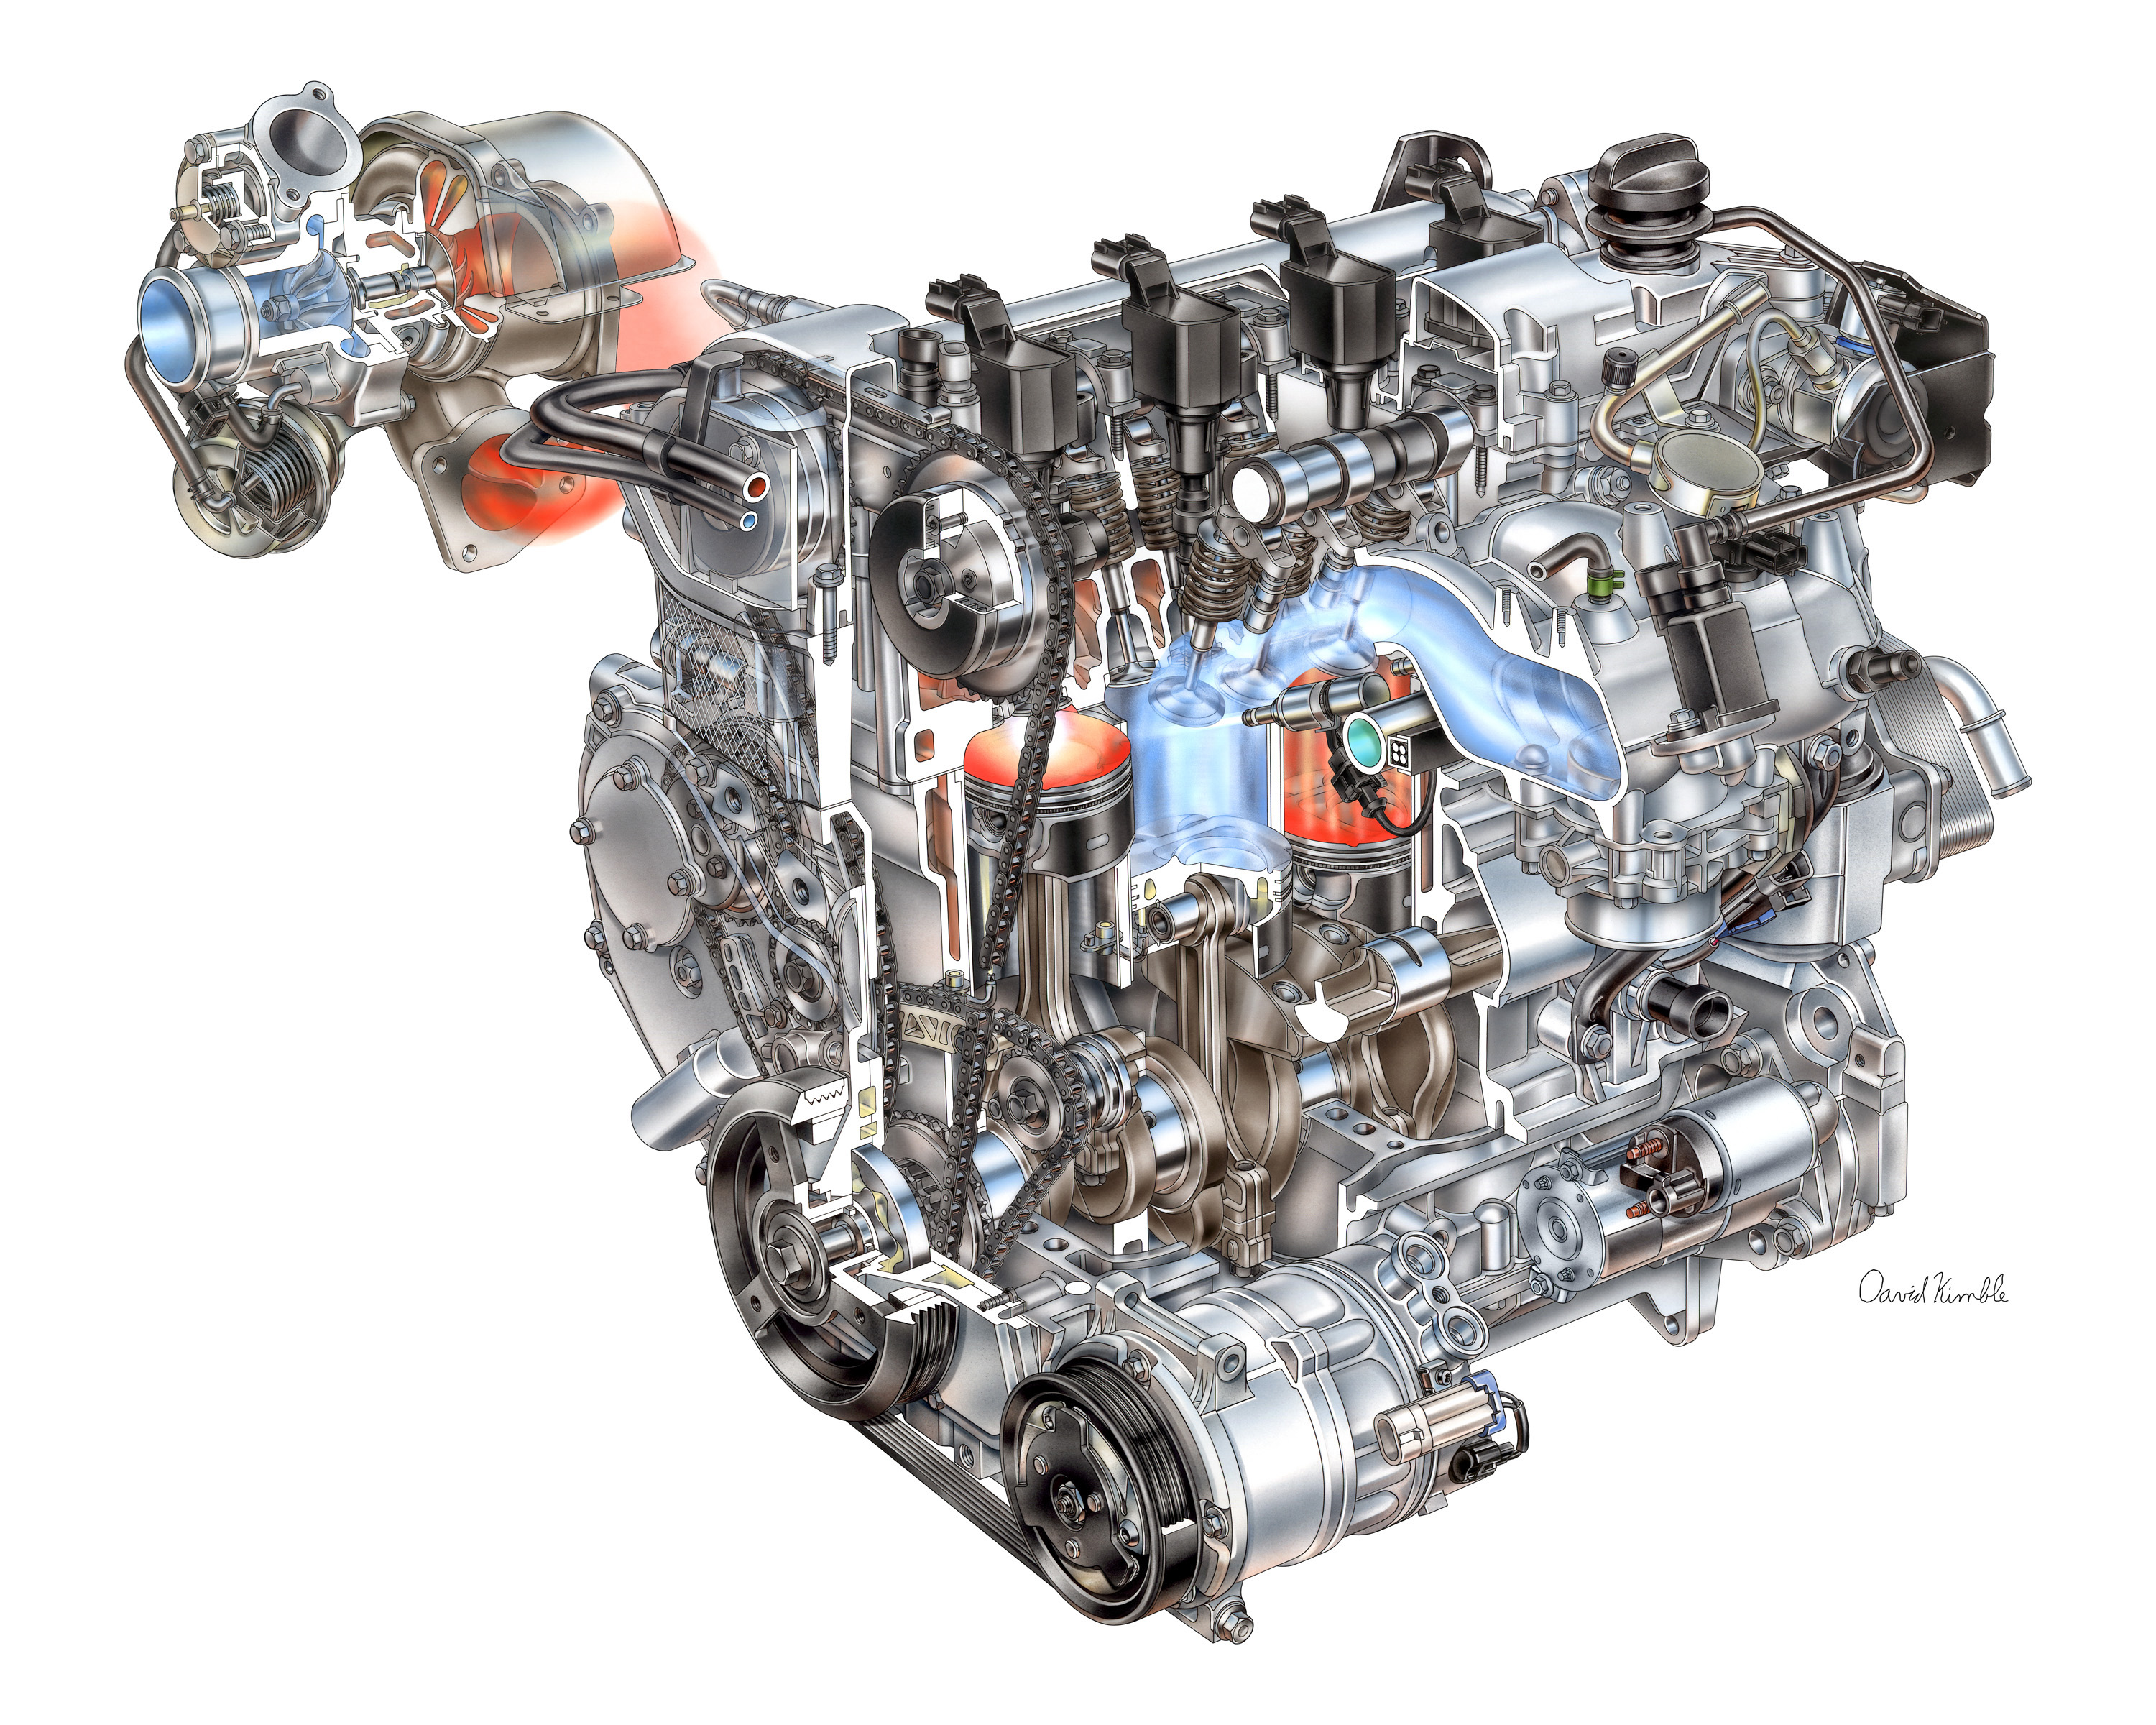 2011 Powertrain 4 Cylinder Ecotec 2.0L I4 VVT DI Turbo LHU 012 buick regal engine brainpower is industry's quickest 2013 GM 2.4 Ecotec Engine at n-0.co